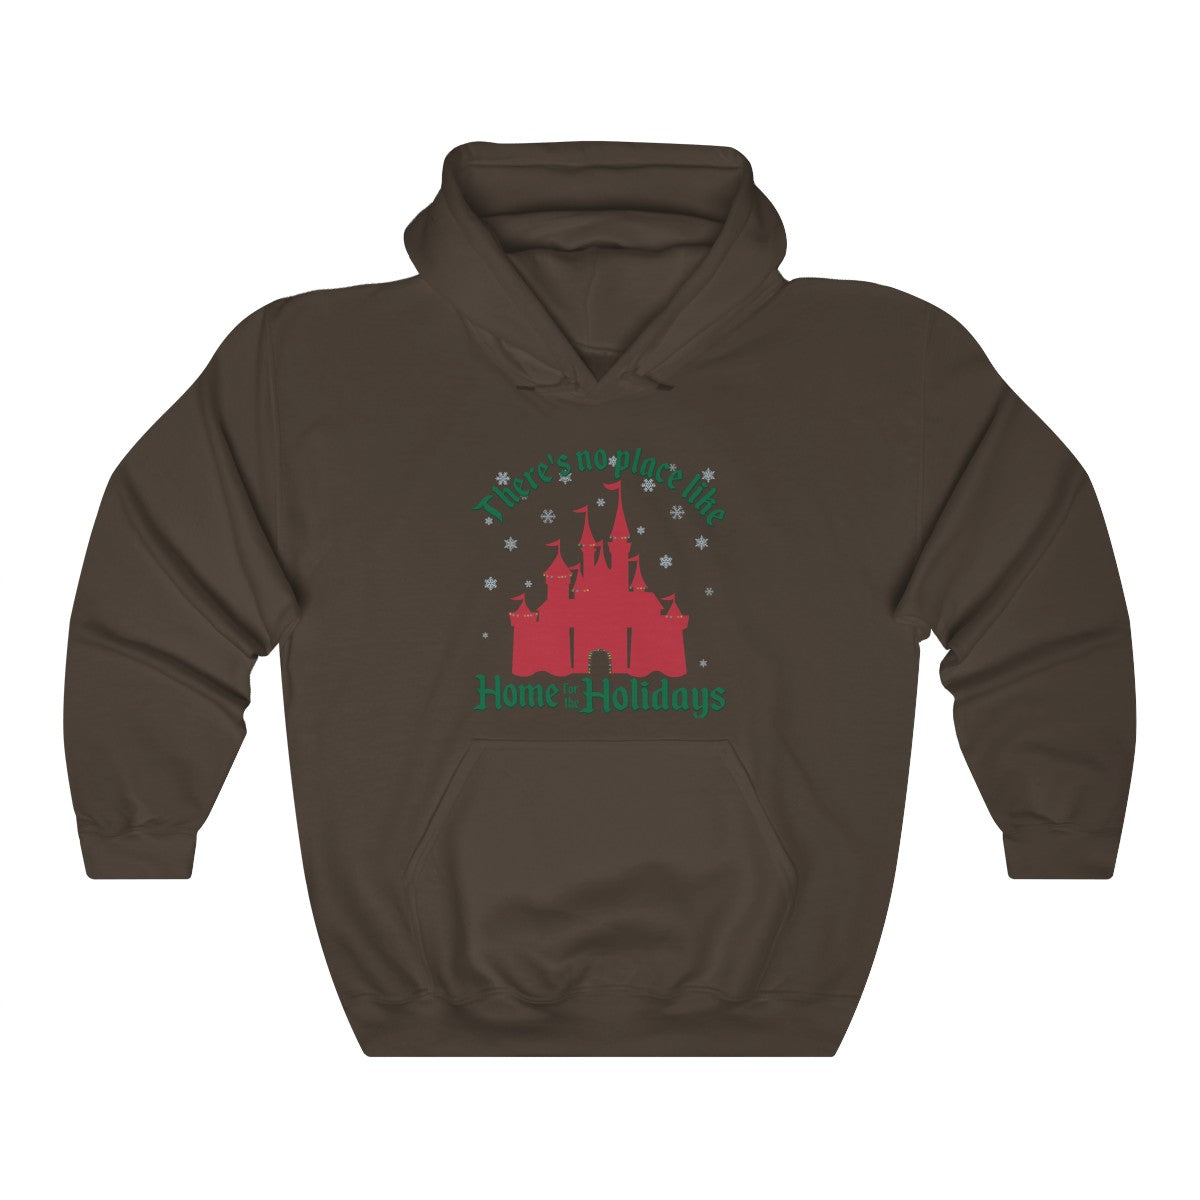 Home for the Holidays Hooded Sweatshirt